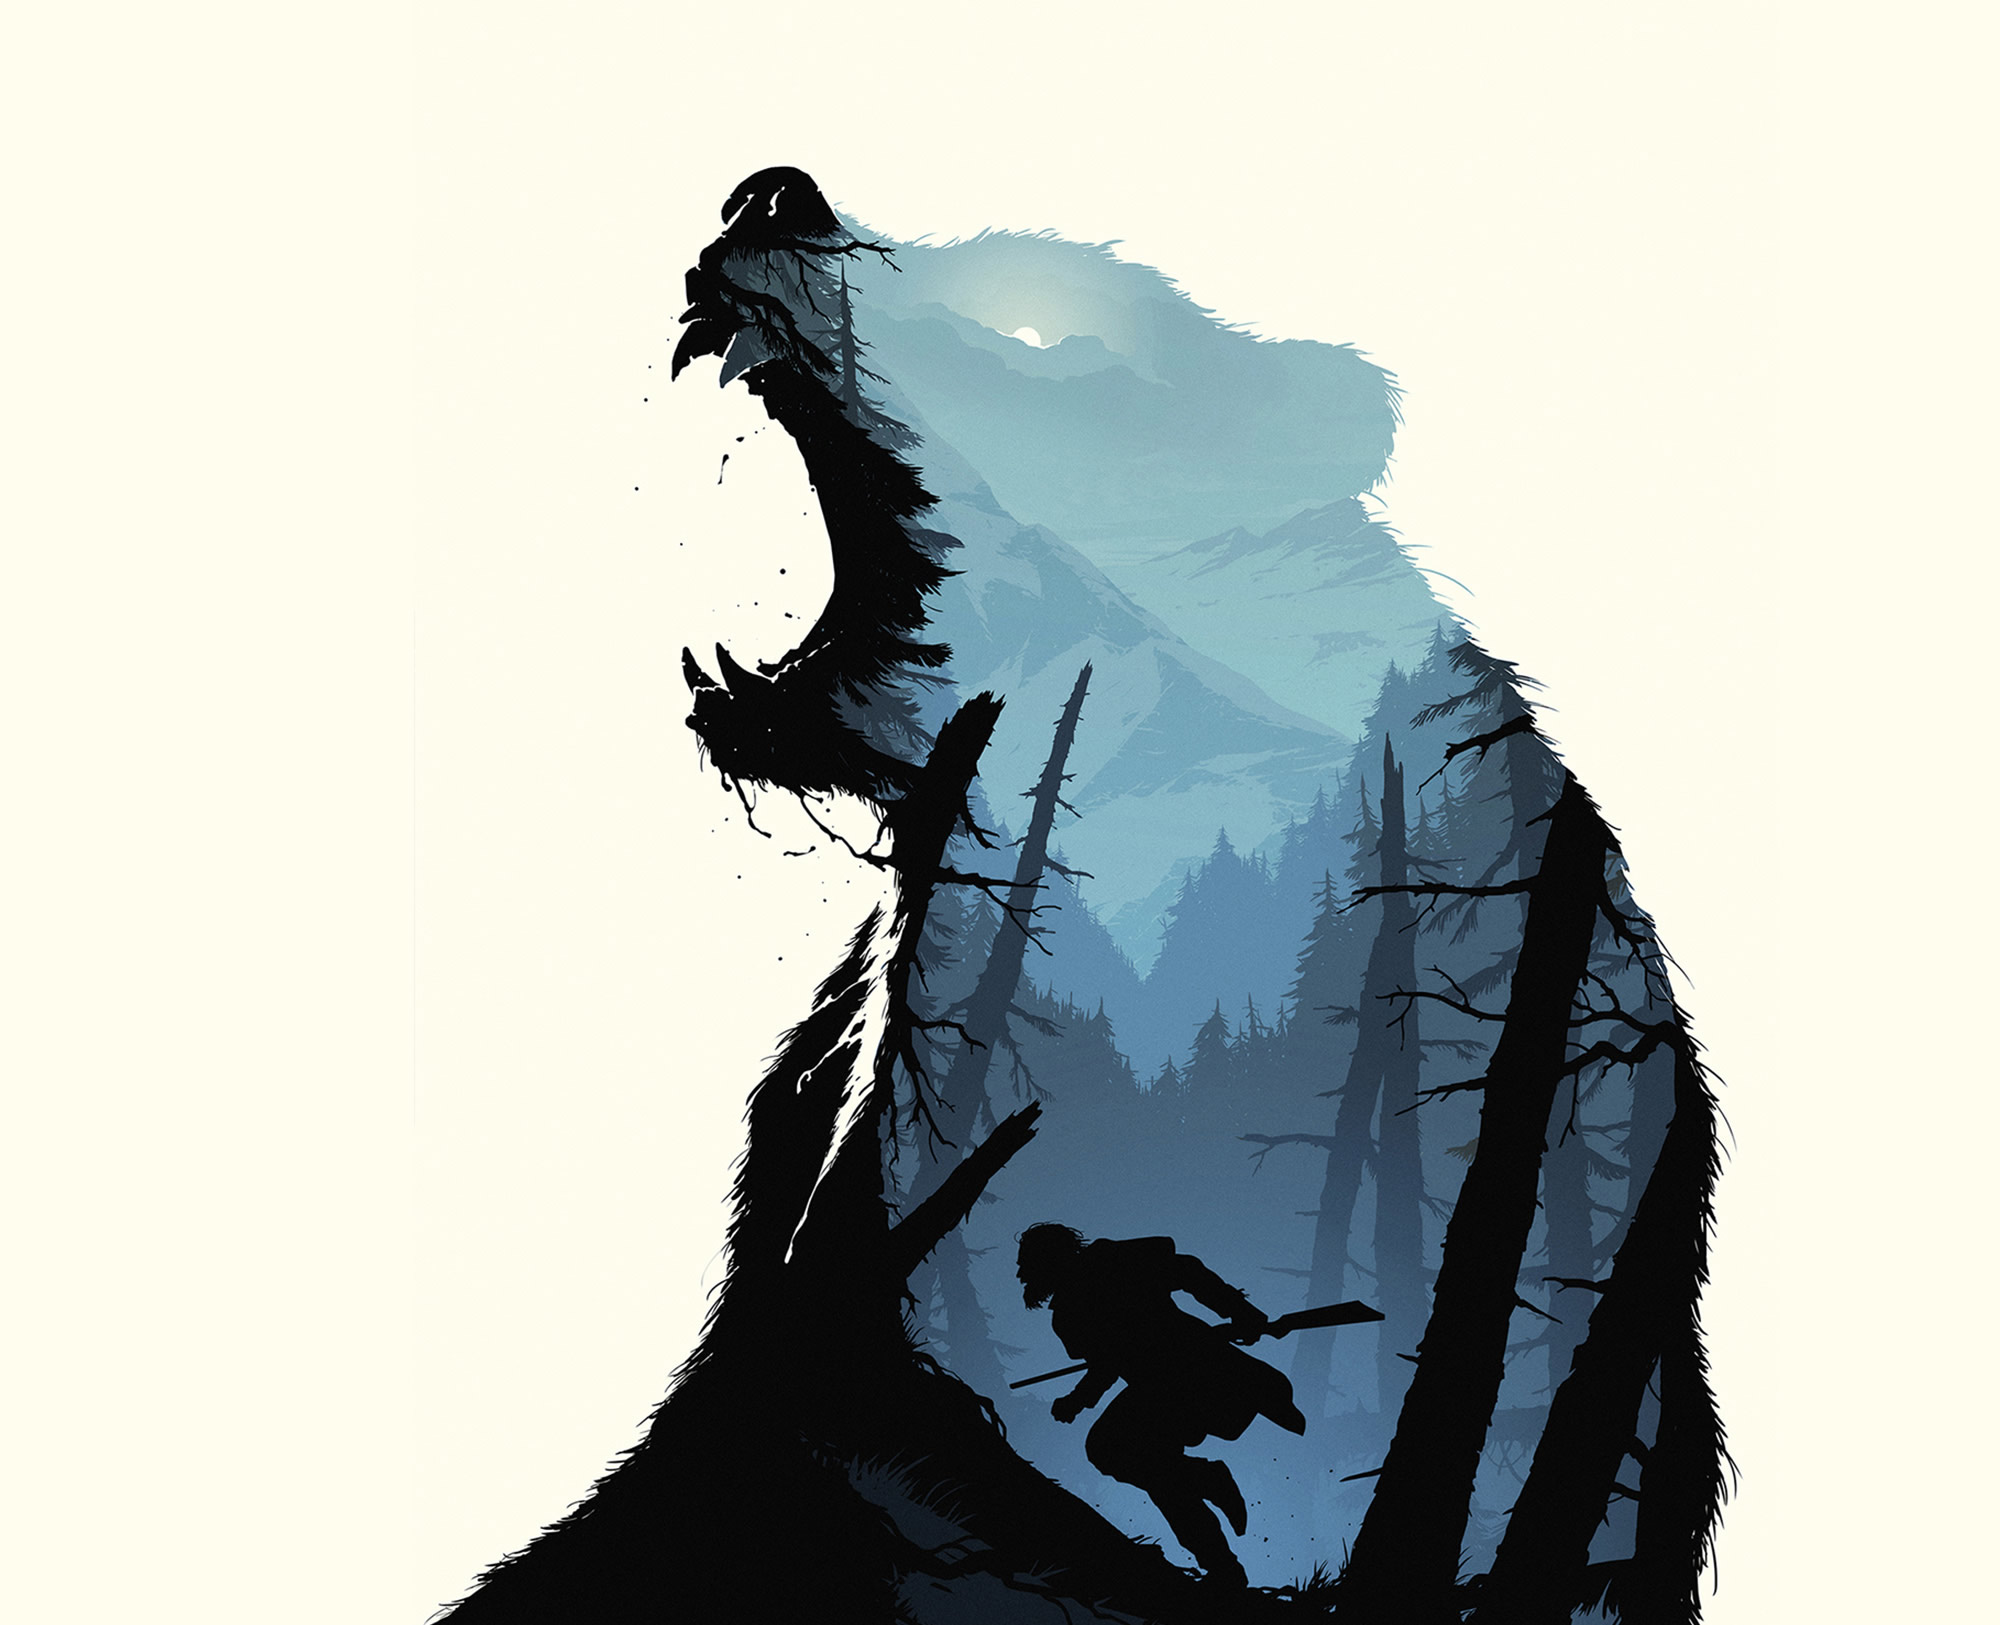 infamous bear in the revenant, double exposure image